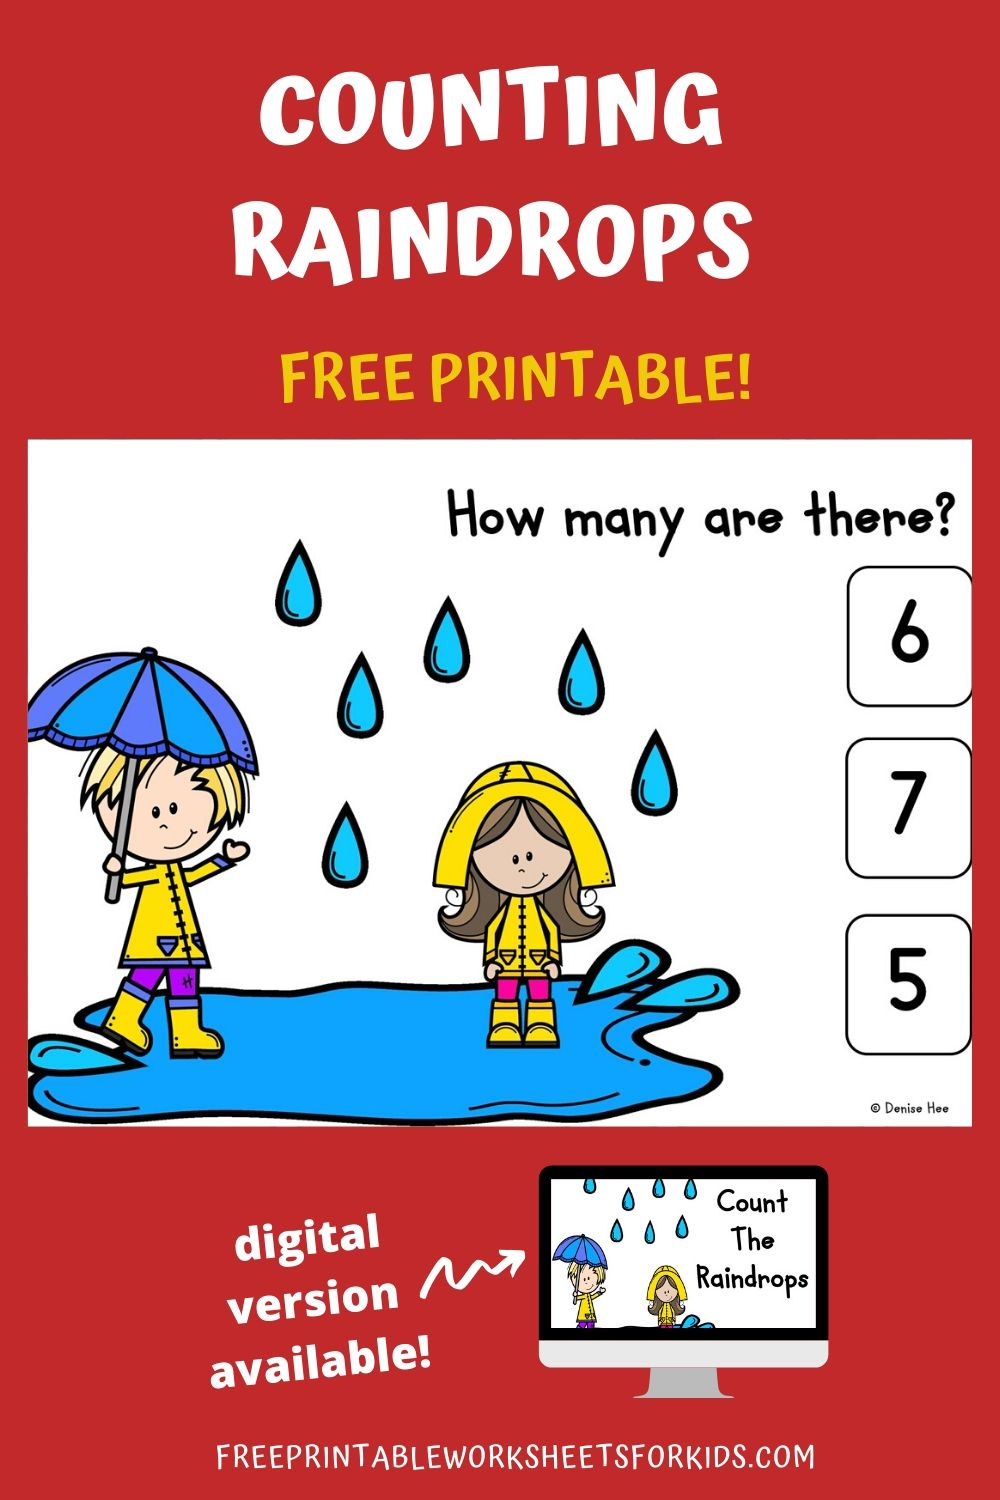 Count The Raindrops 1-10 | Free Printable Worksheets For Kids | Count how many raindrops are forming those fun puddles in this spring-themed game. Kids will practice counting from 1 to 10 while strengthening fine motor muscles with this set of clipcards.